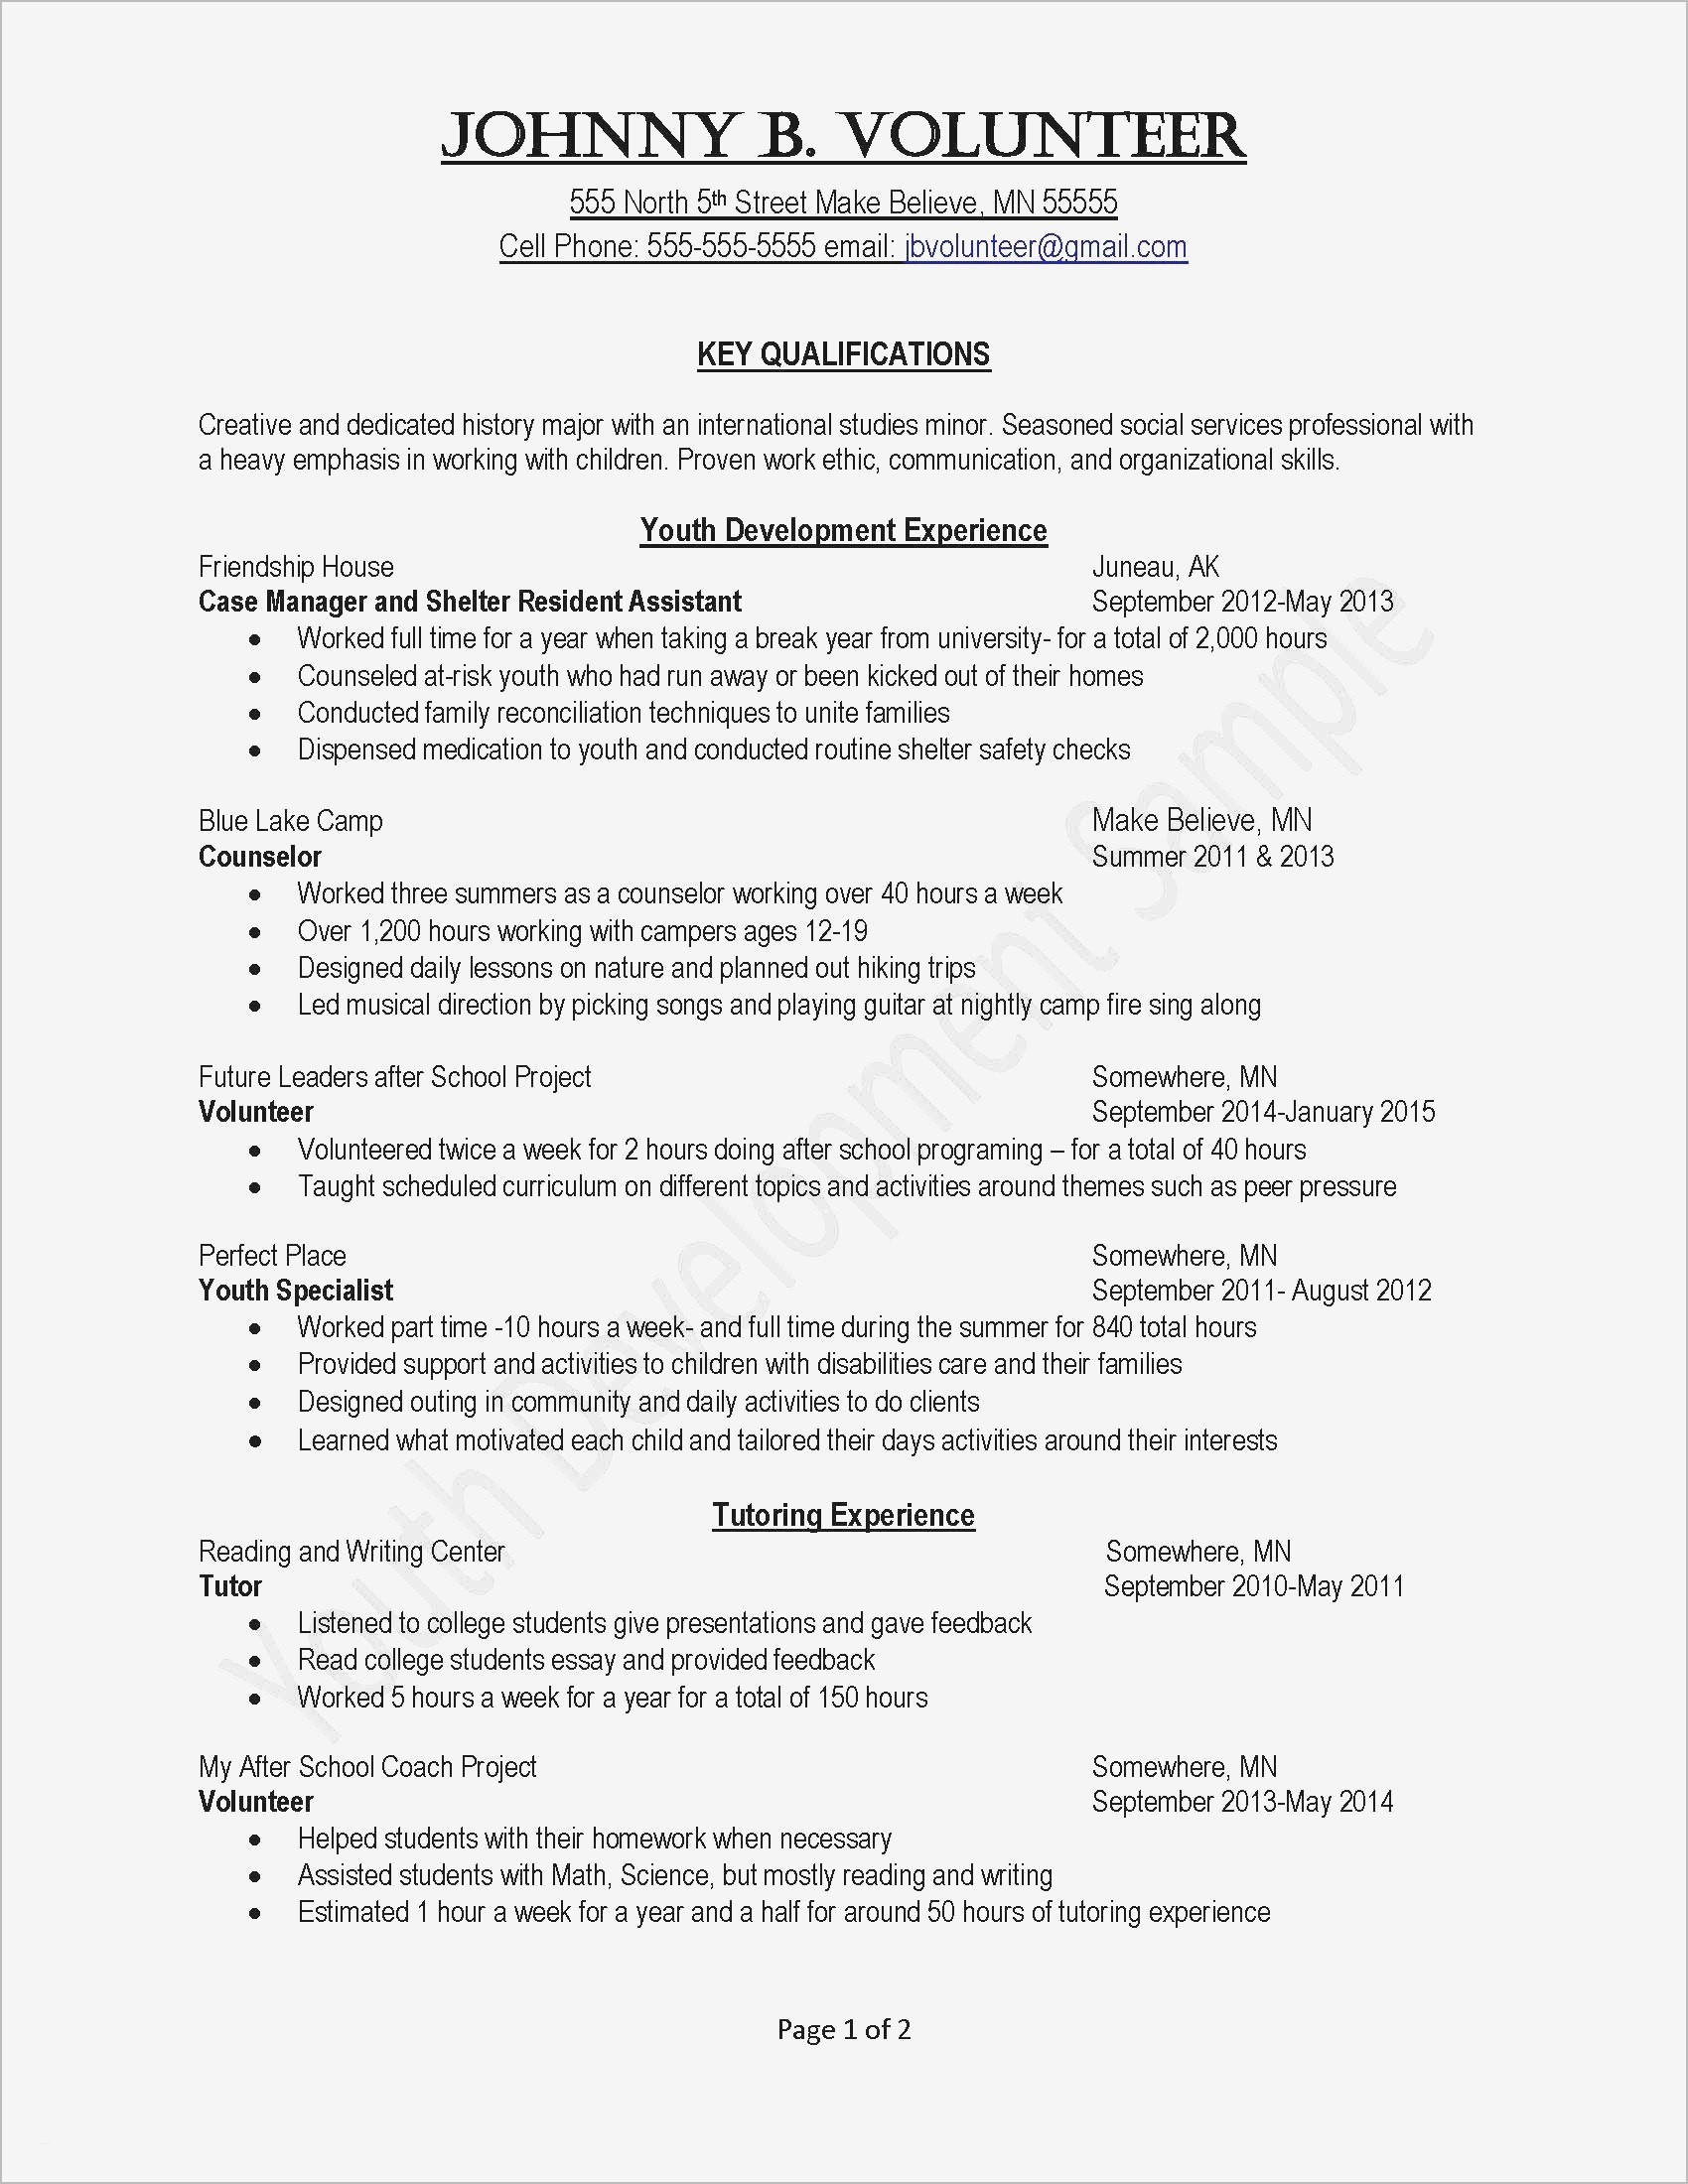 Offer Letter Email Template - Job Fer Letter Template Us Copy Od Consultant Cover Letter Fungram